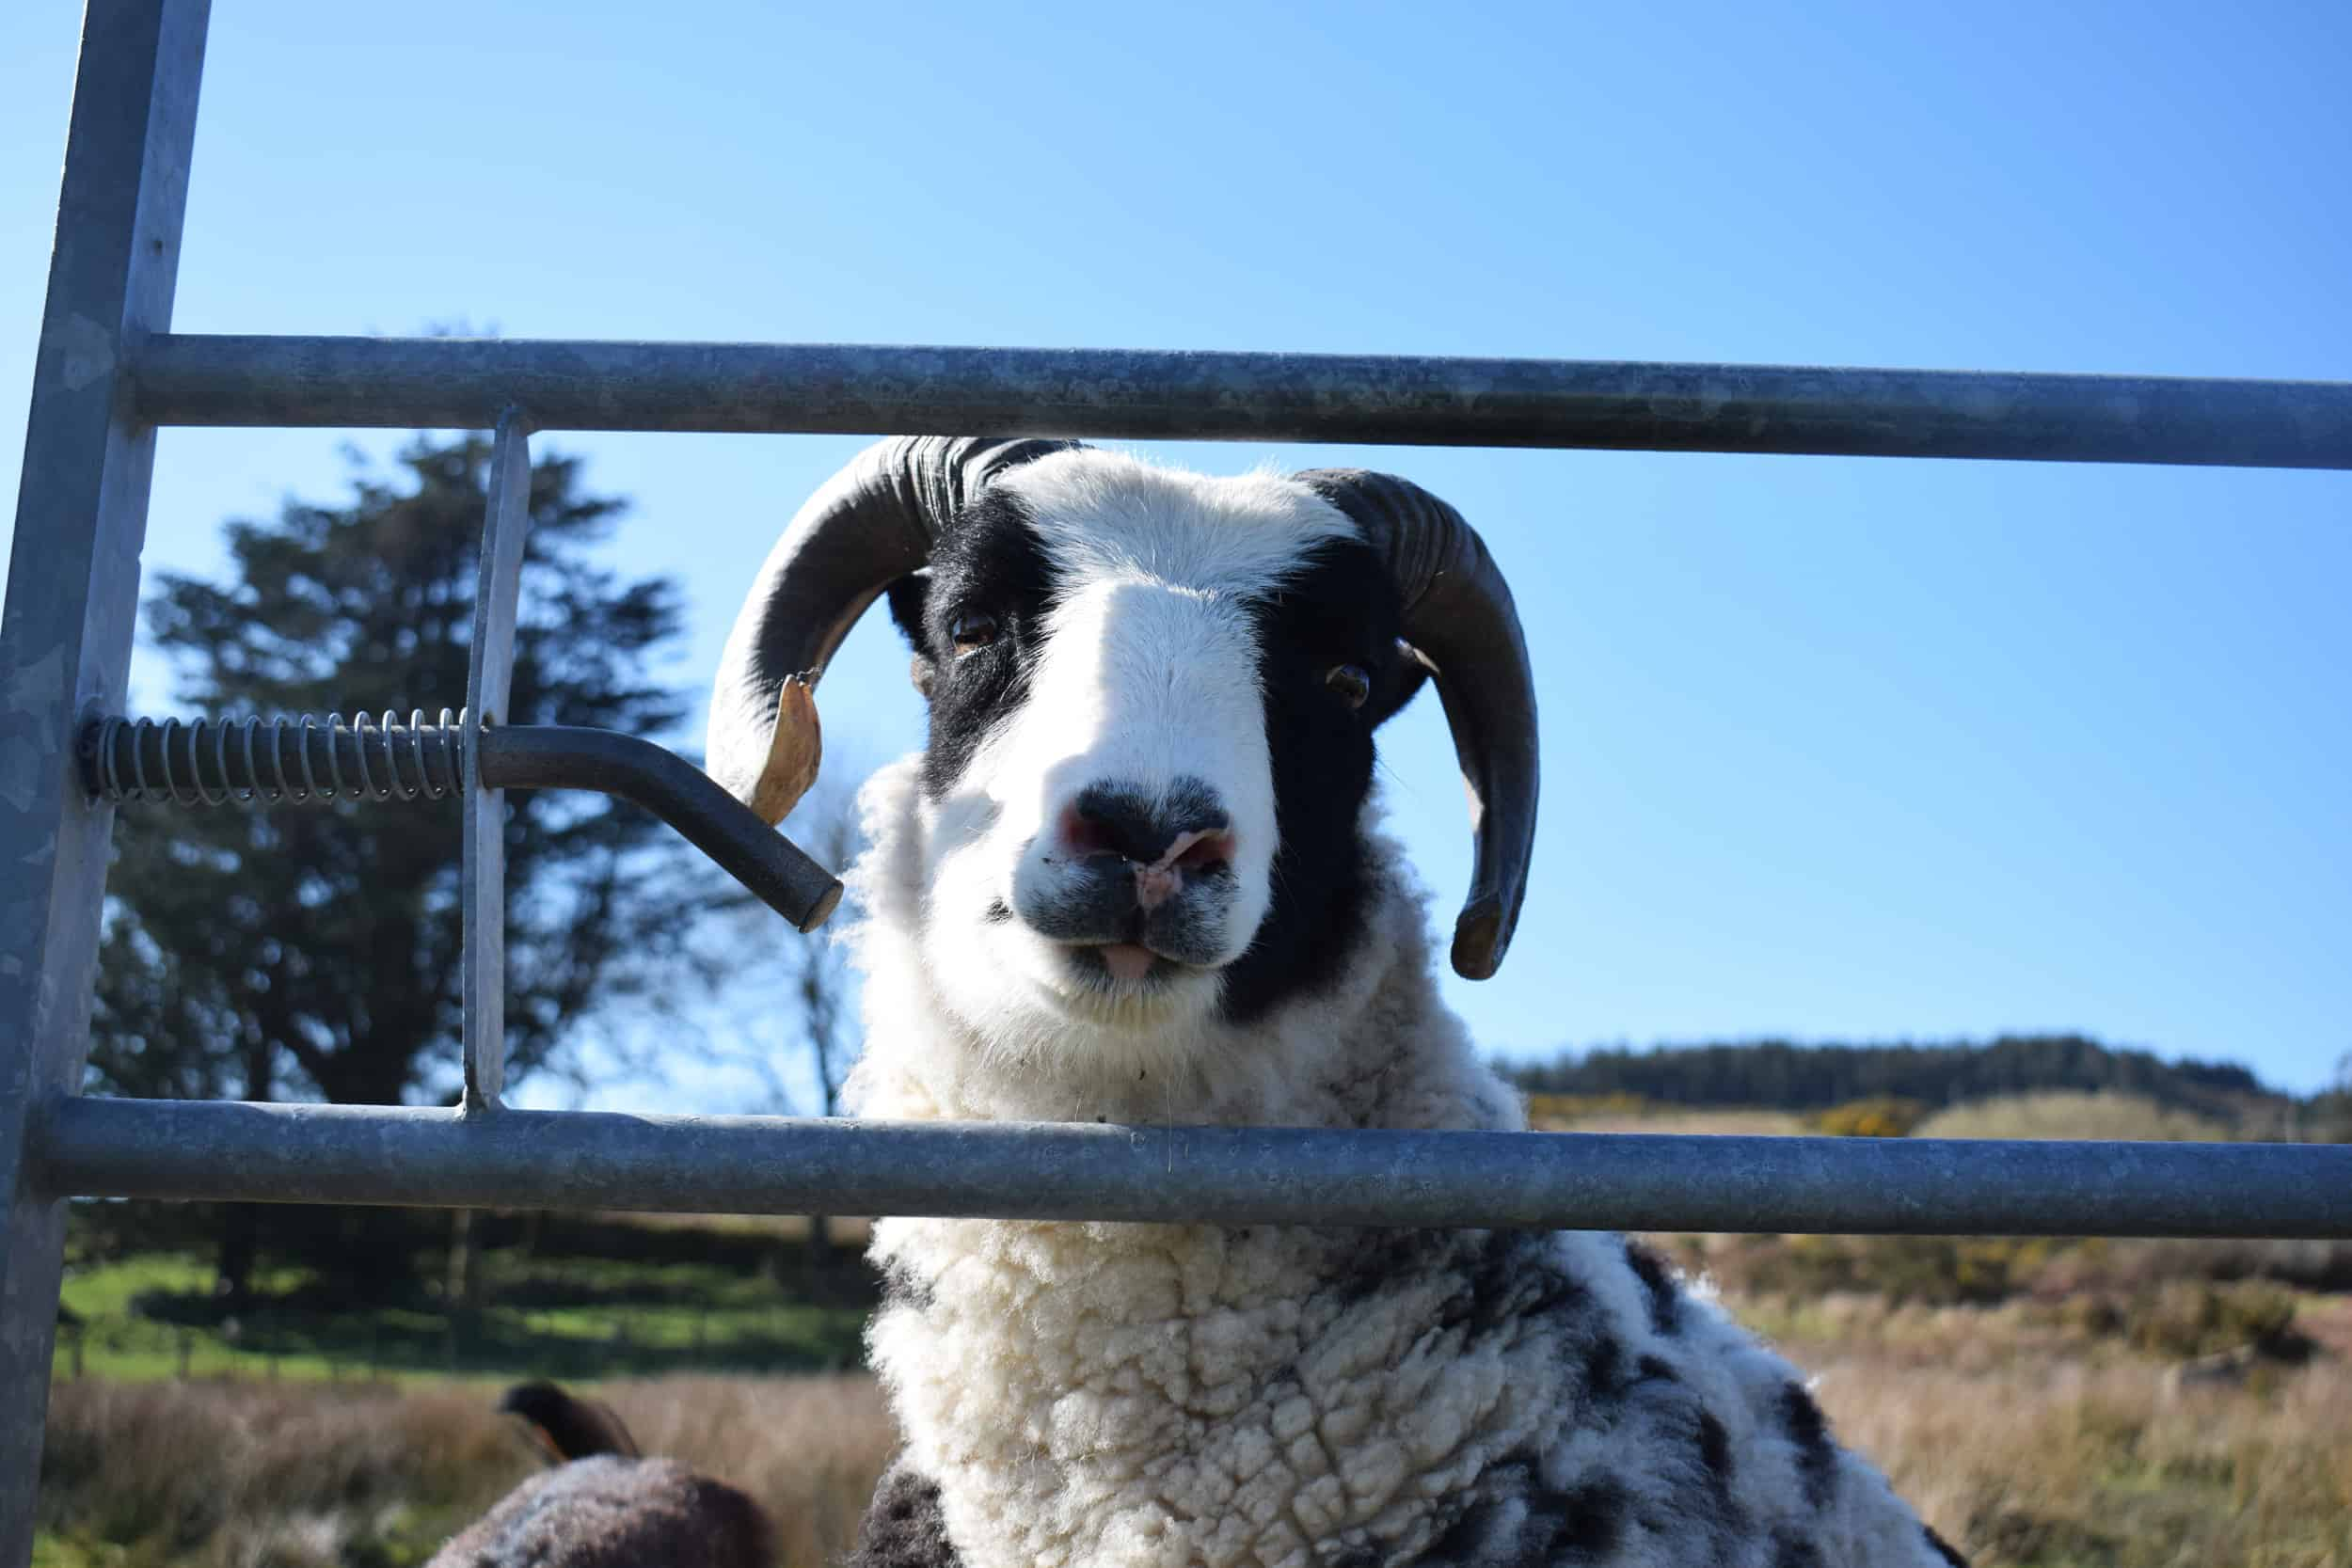 smartie jacob cross shetland sheep spotty ram dalmation sheep handsome british wool black and white 3